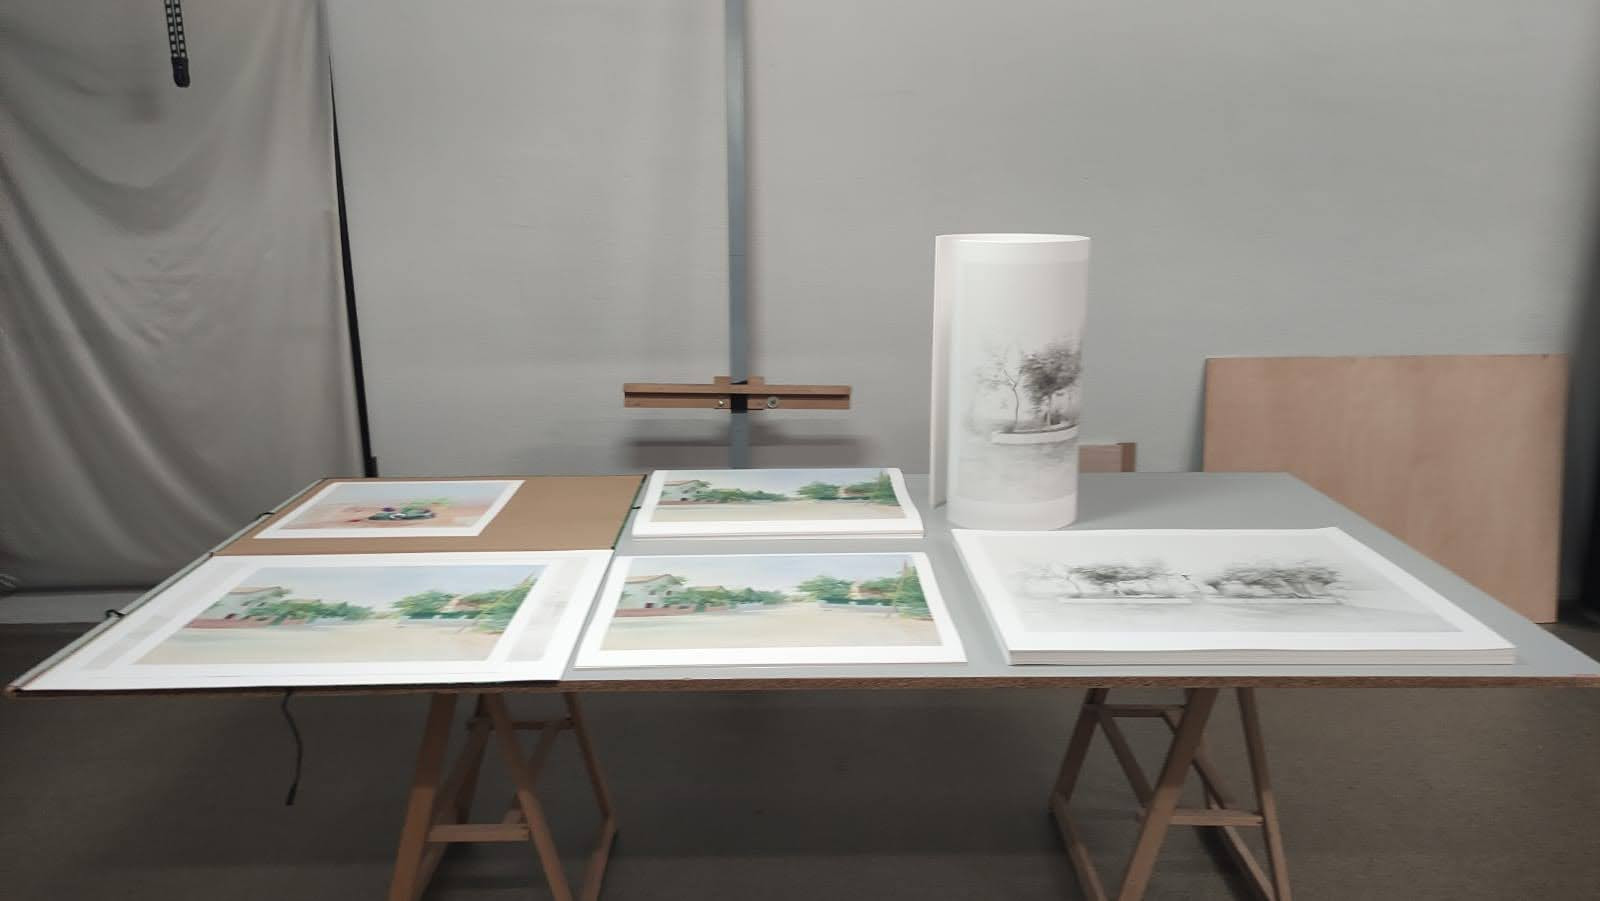 Proofs and prints of the works of María Moreno in UM